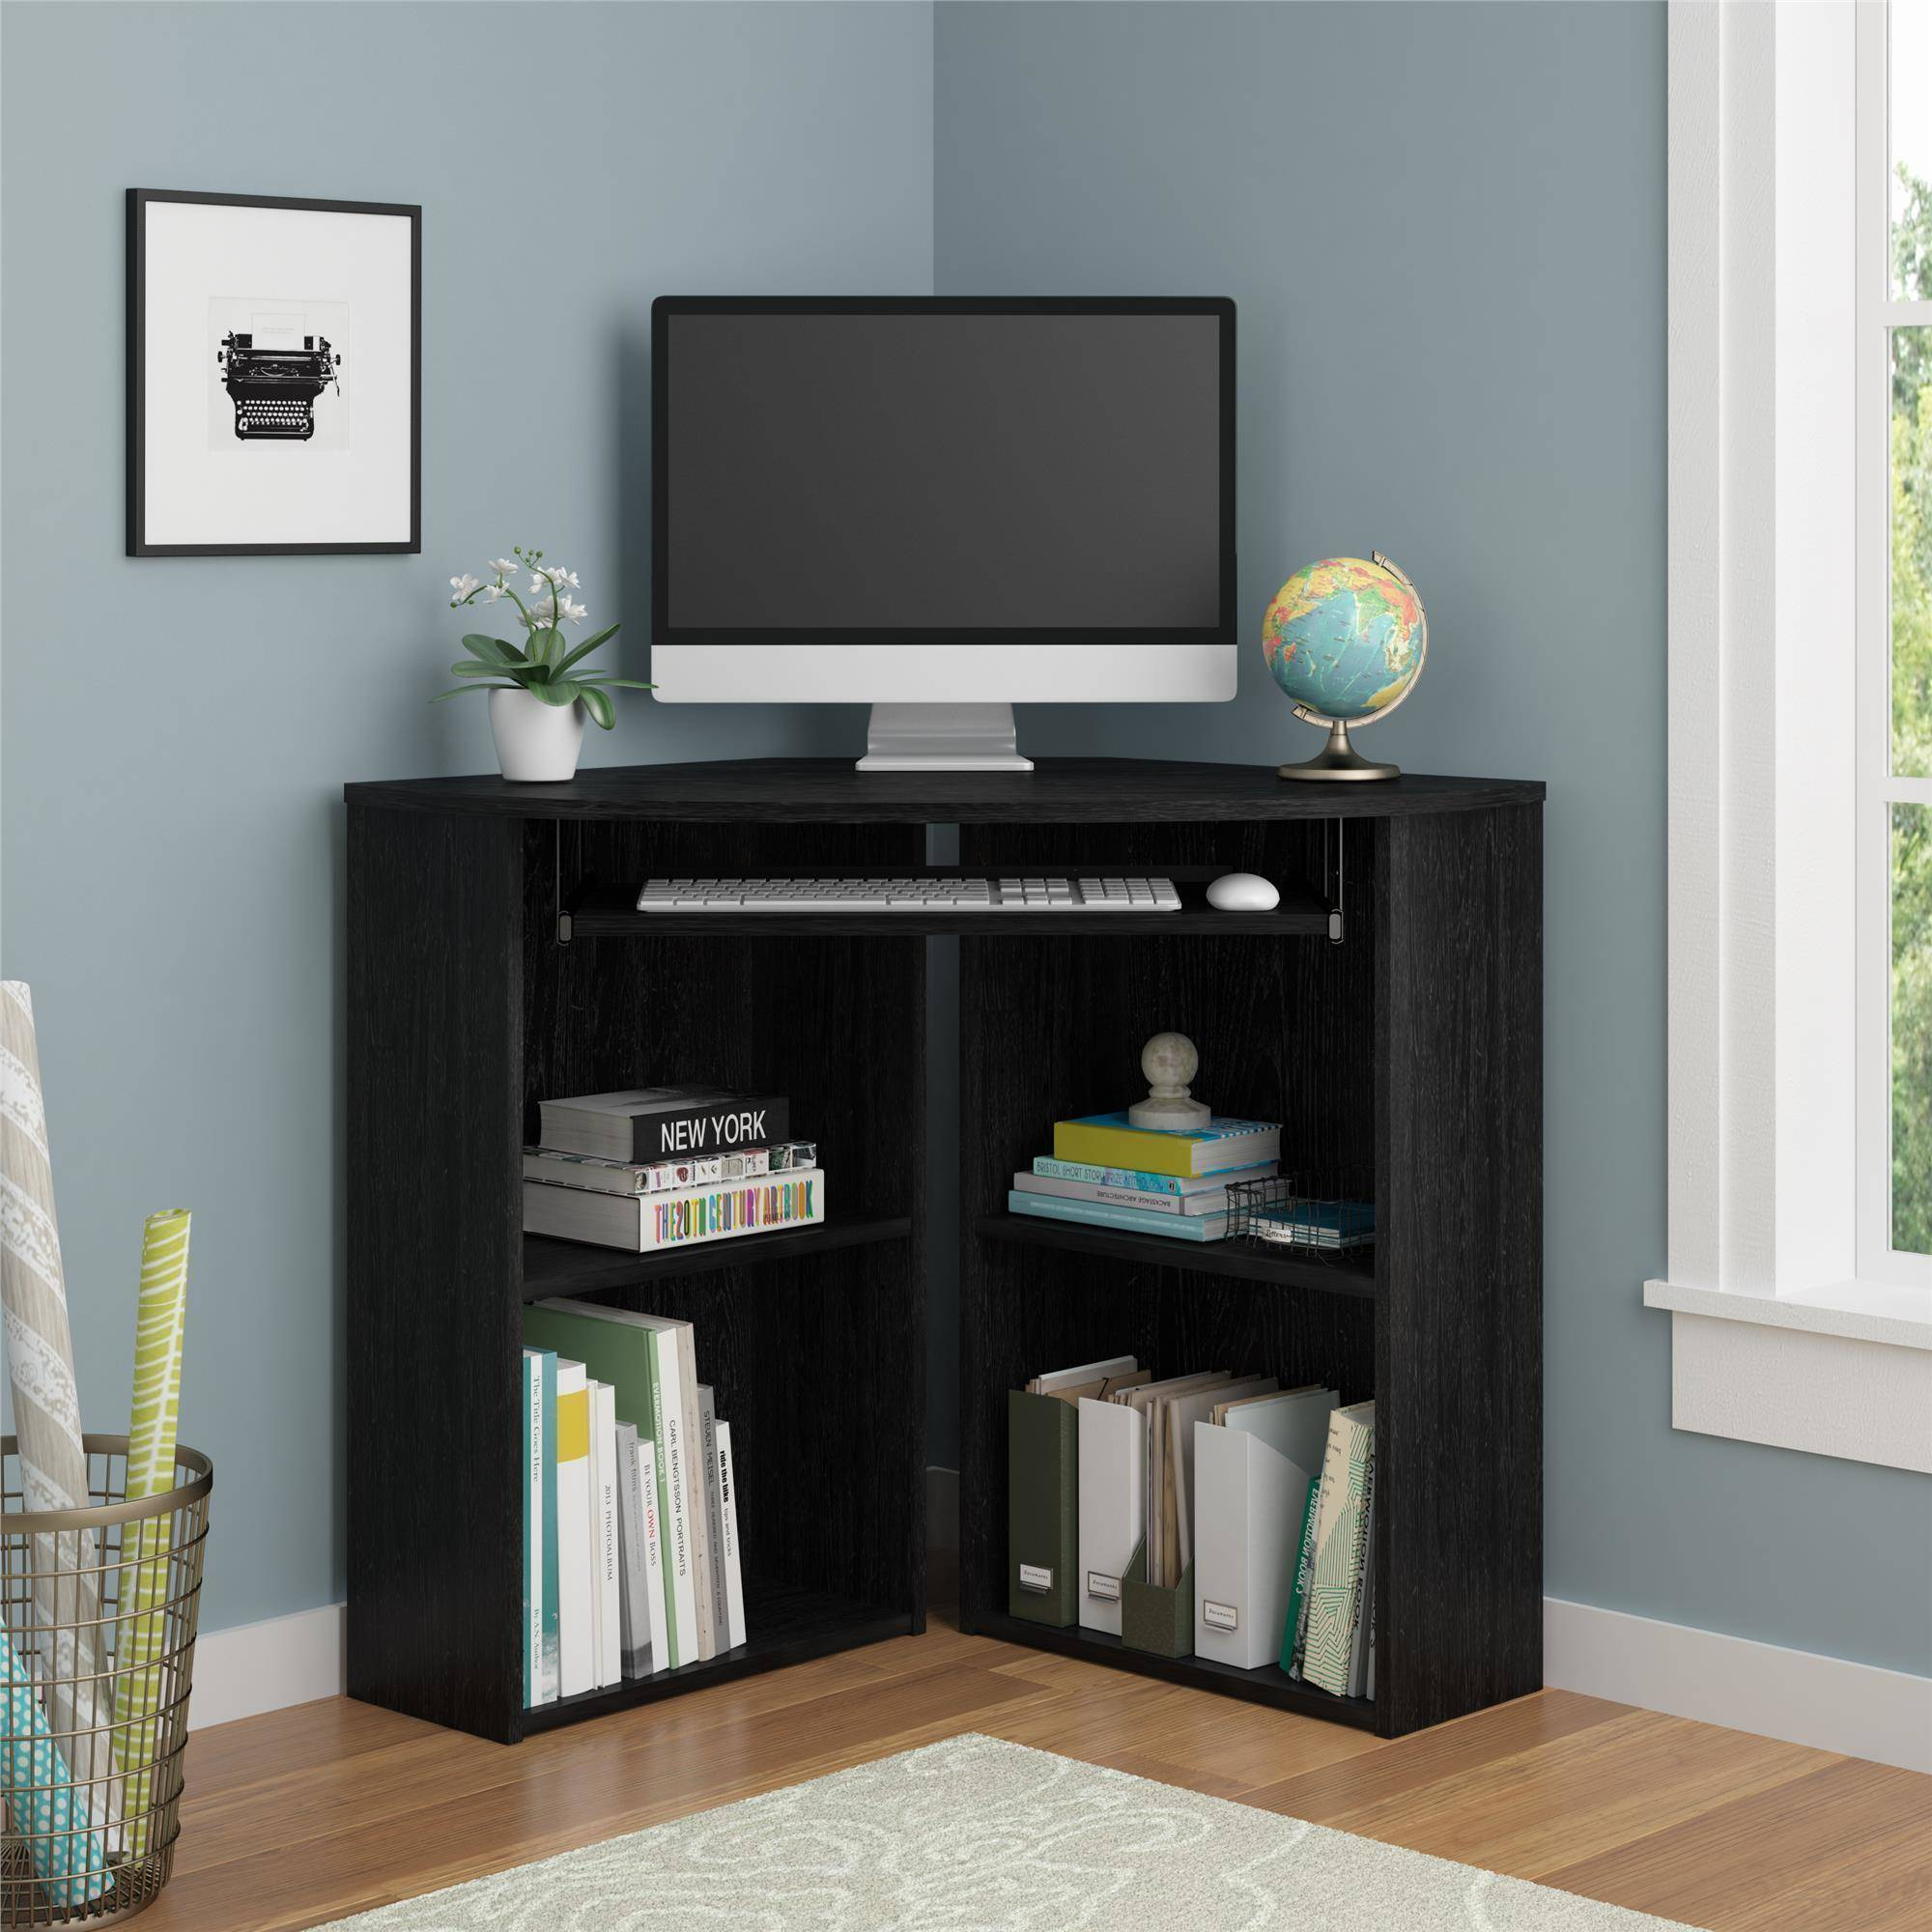 design guest library bookshelf bookcase desk a computer with of great ideas unique or for room office home luxury